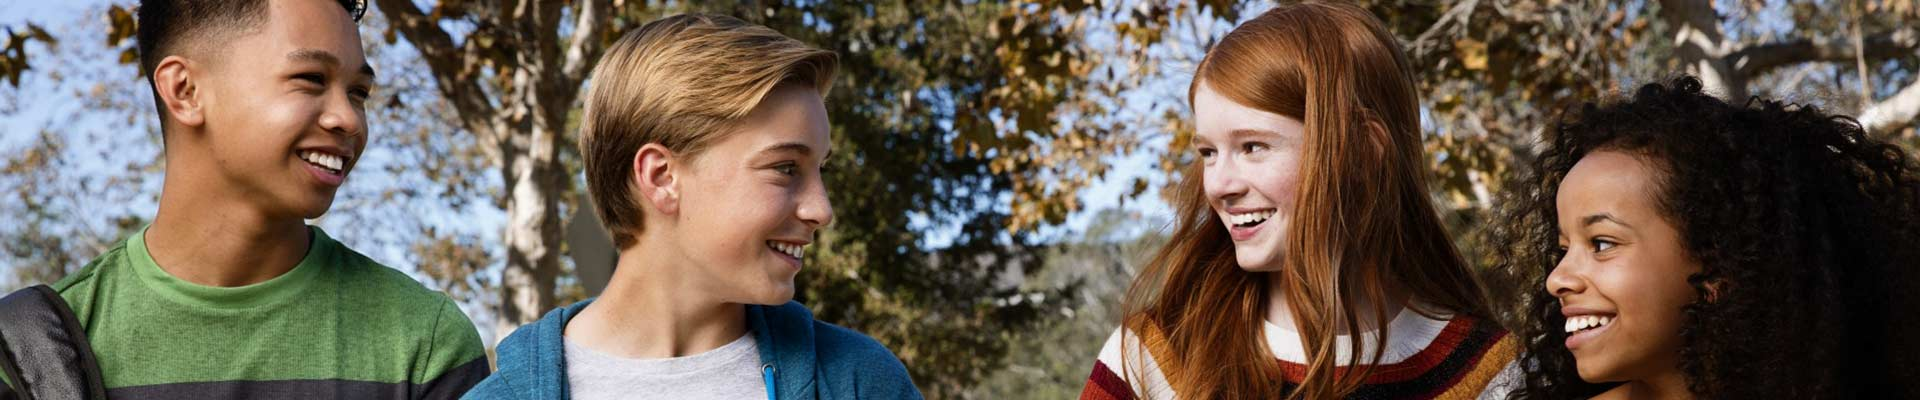 Invisalign Teen Hidden Valley Orthodontics in Escondido, CA